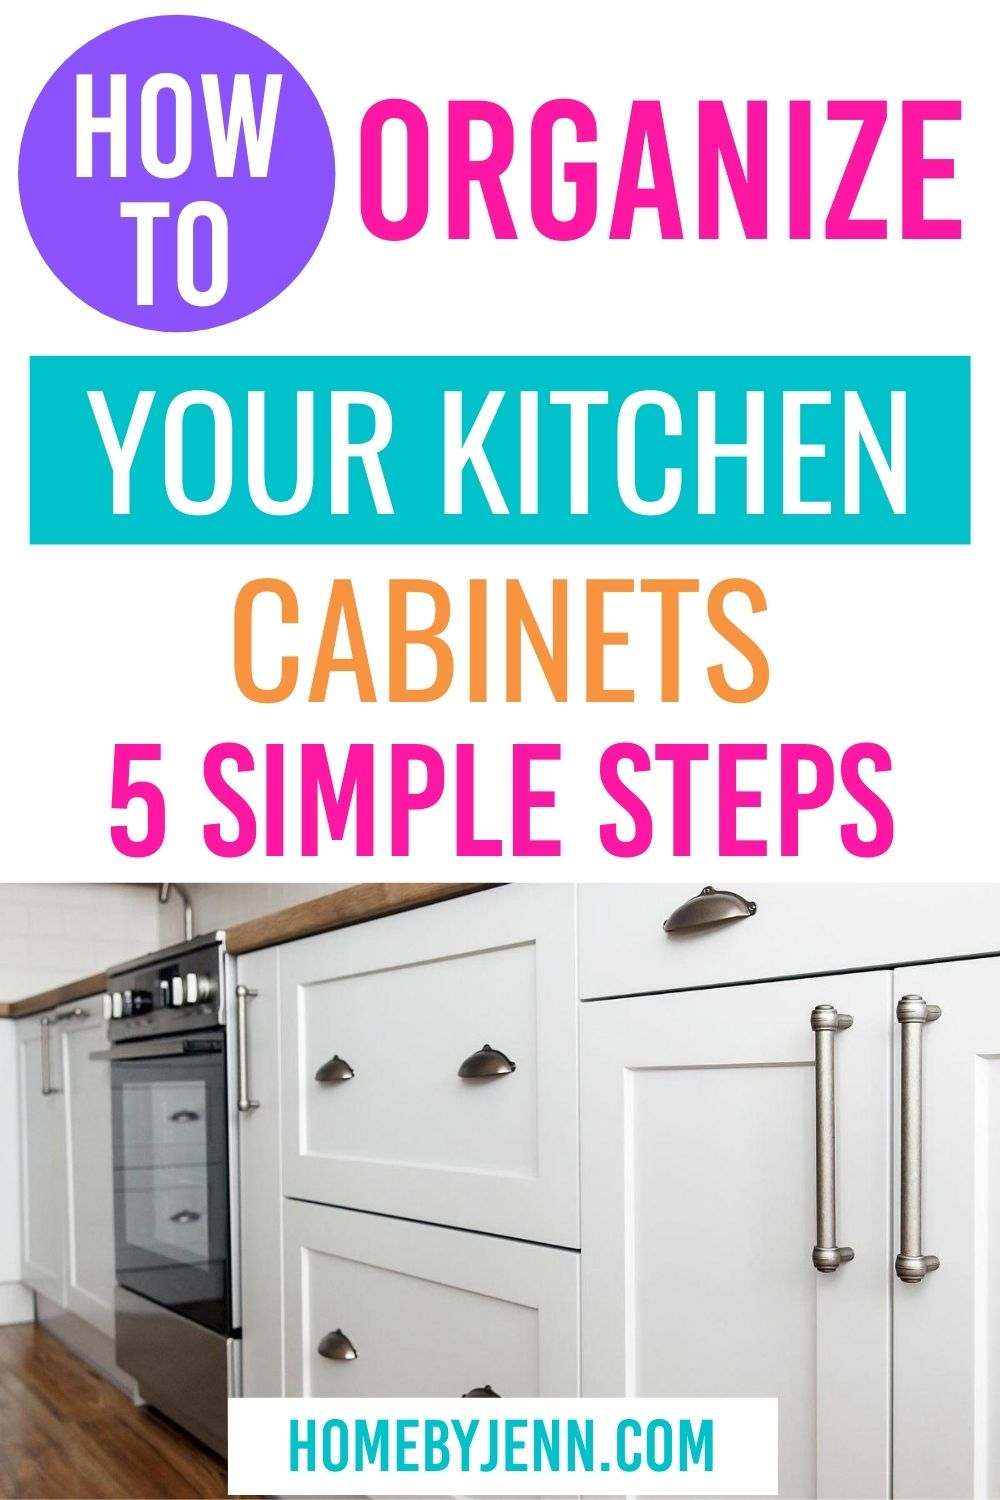 Clean and organized your kitchen cupboards by following these 5 simple steps. These tips will help you keep your kitchen clean and organized. #cleaningtips #organizingtips #cleankitchen #cleanhome #cleaning #organizing via @homebyjenn